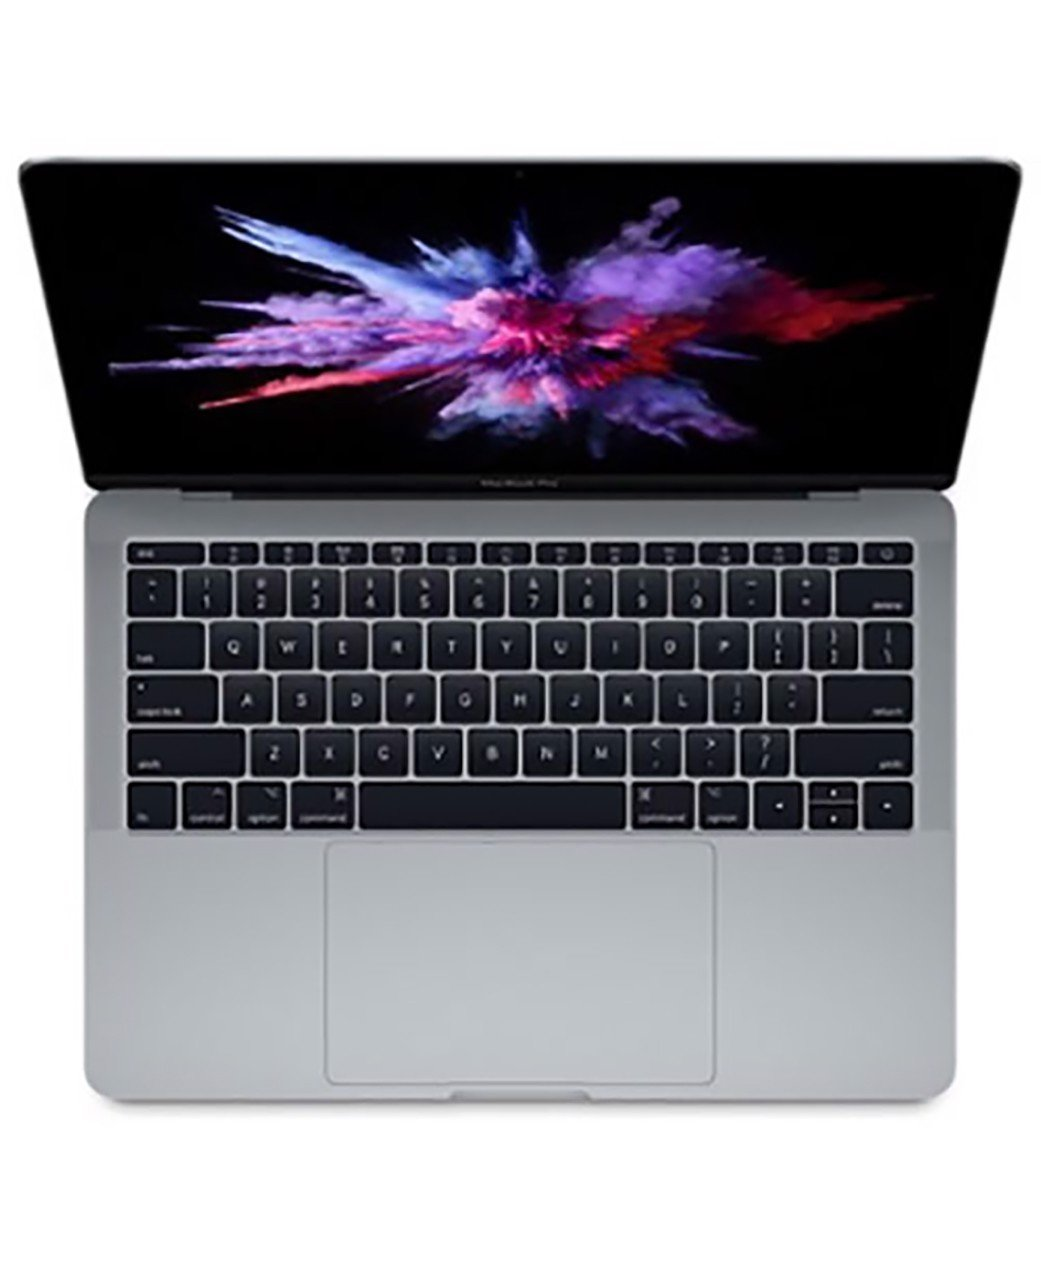 Macbook Pro 13.3 inch 128GB - Core i5 RAM 8GB - 2017